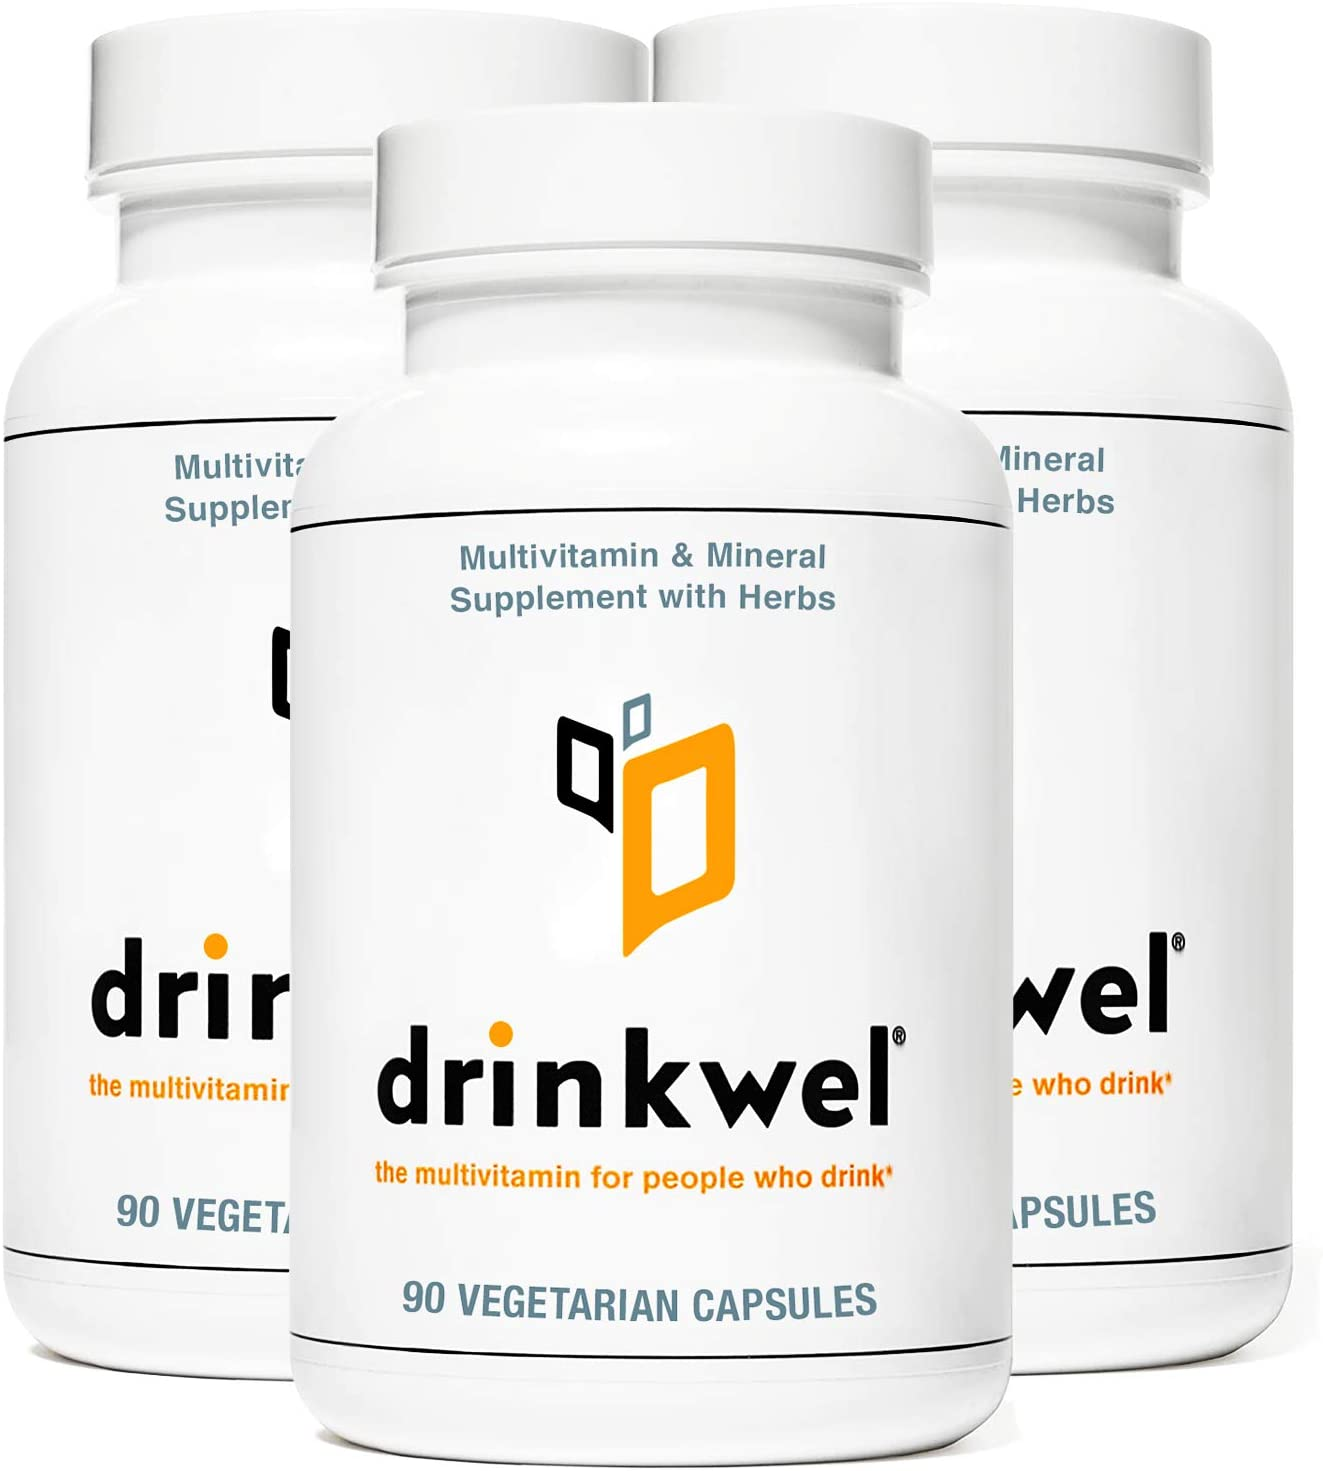 Drinkwel Premium Hangover Multivitamin Supplement - Pack of 3 x 90 Capsules - Morning Recovery, Liver Cleanse, Detox, Immune Support- Milk Thistle, N-Acetyl Cysteine (NAC), Vitamin C, Zinc, Magnesium